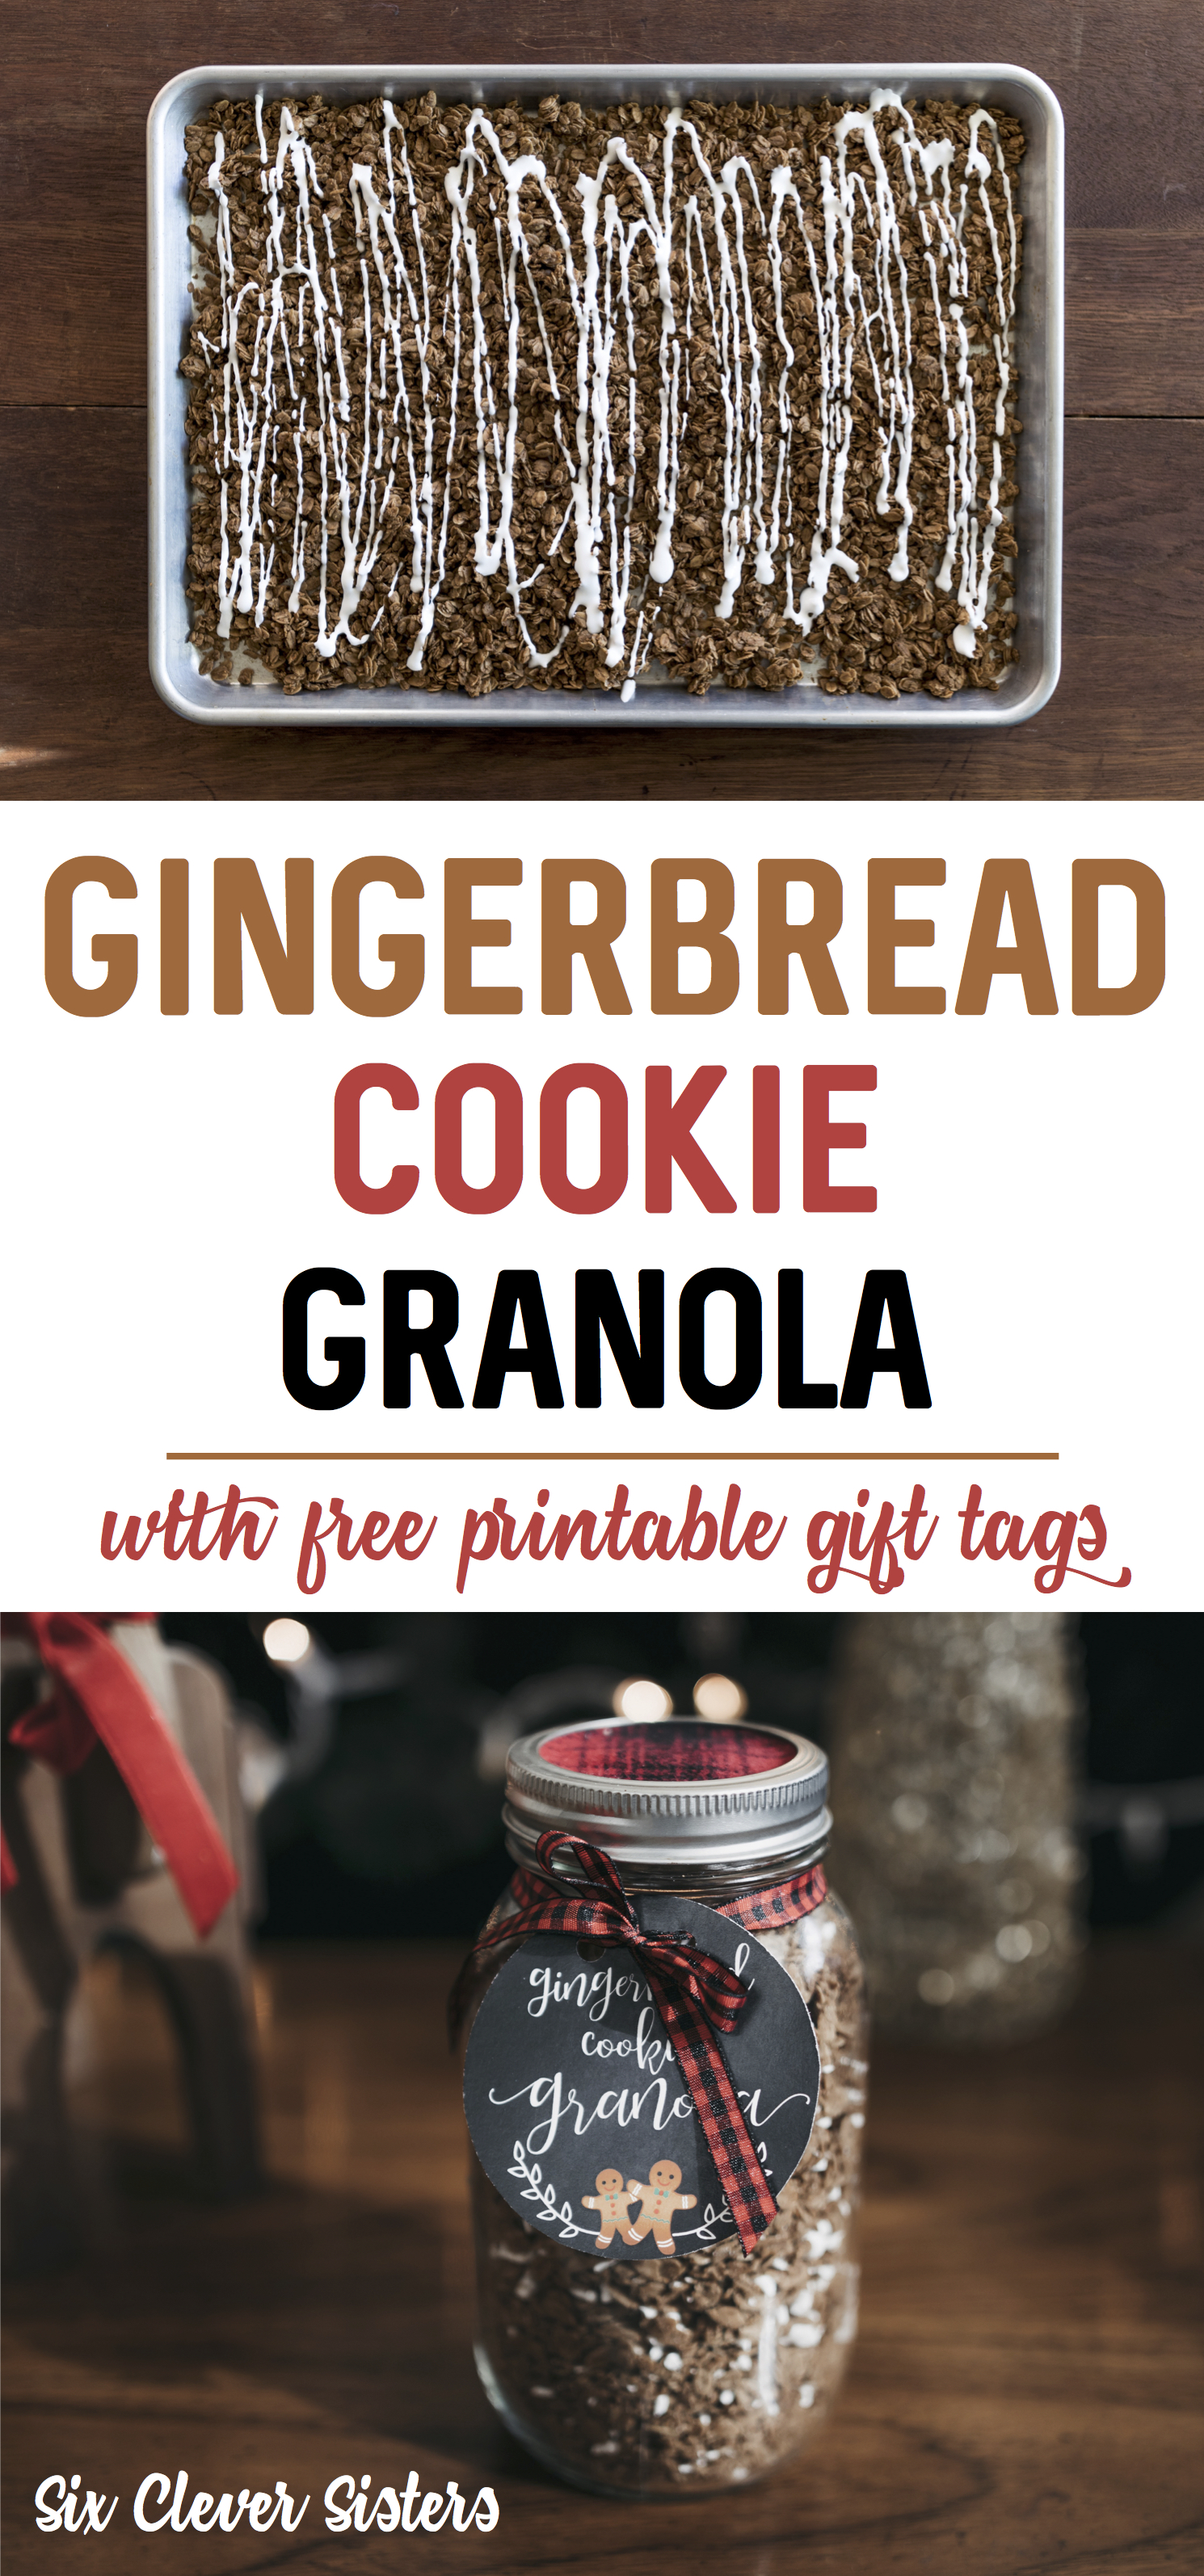 Gingerbread Cookie Granola Tags Pinterest Six Clever Sisters